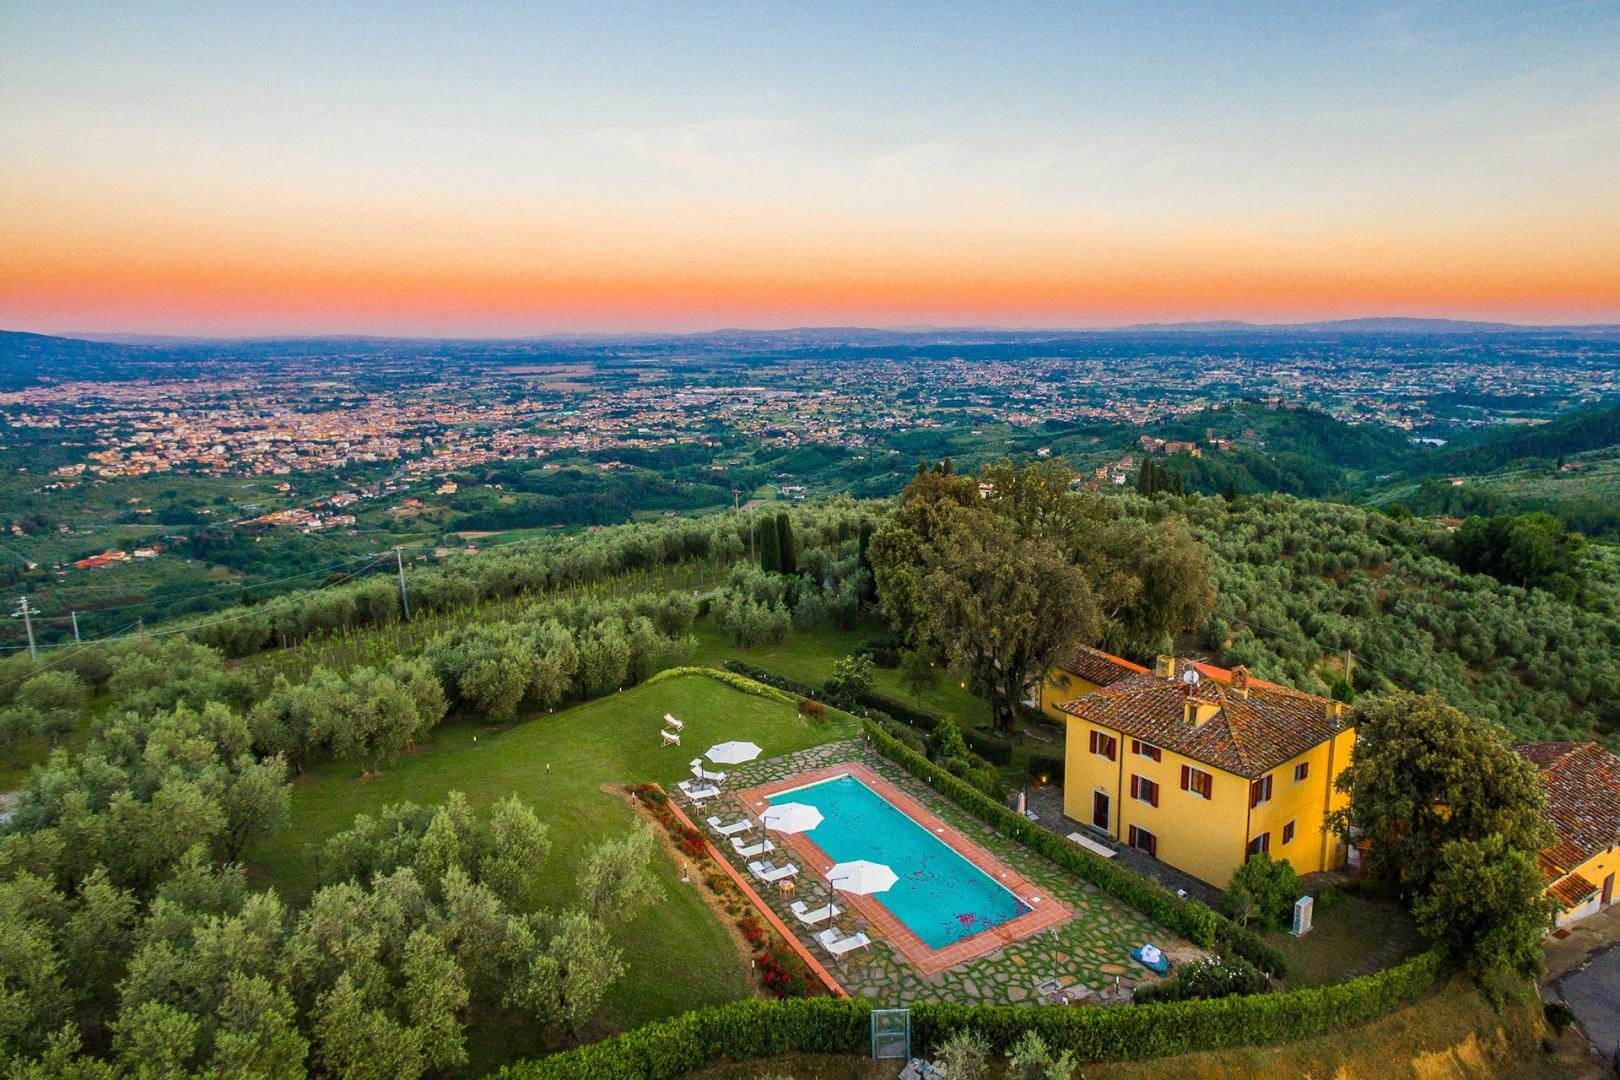 The property has large olive groves and produces its own oil.